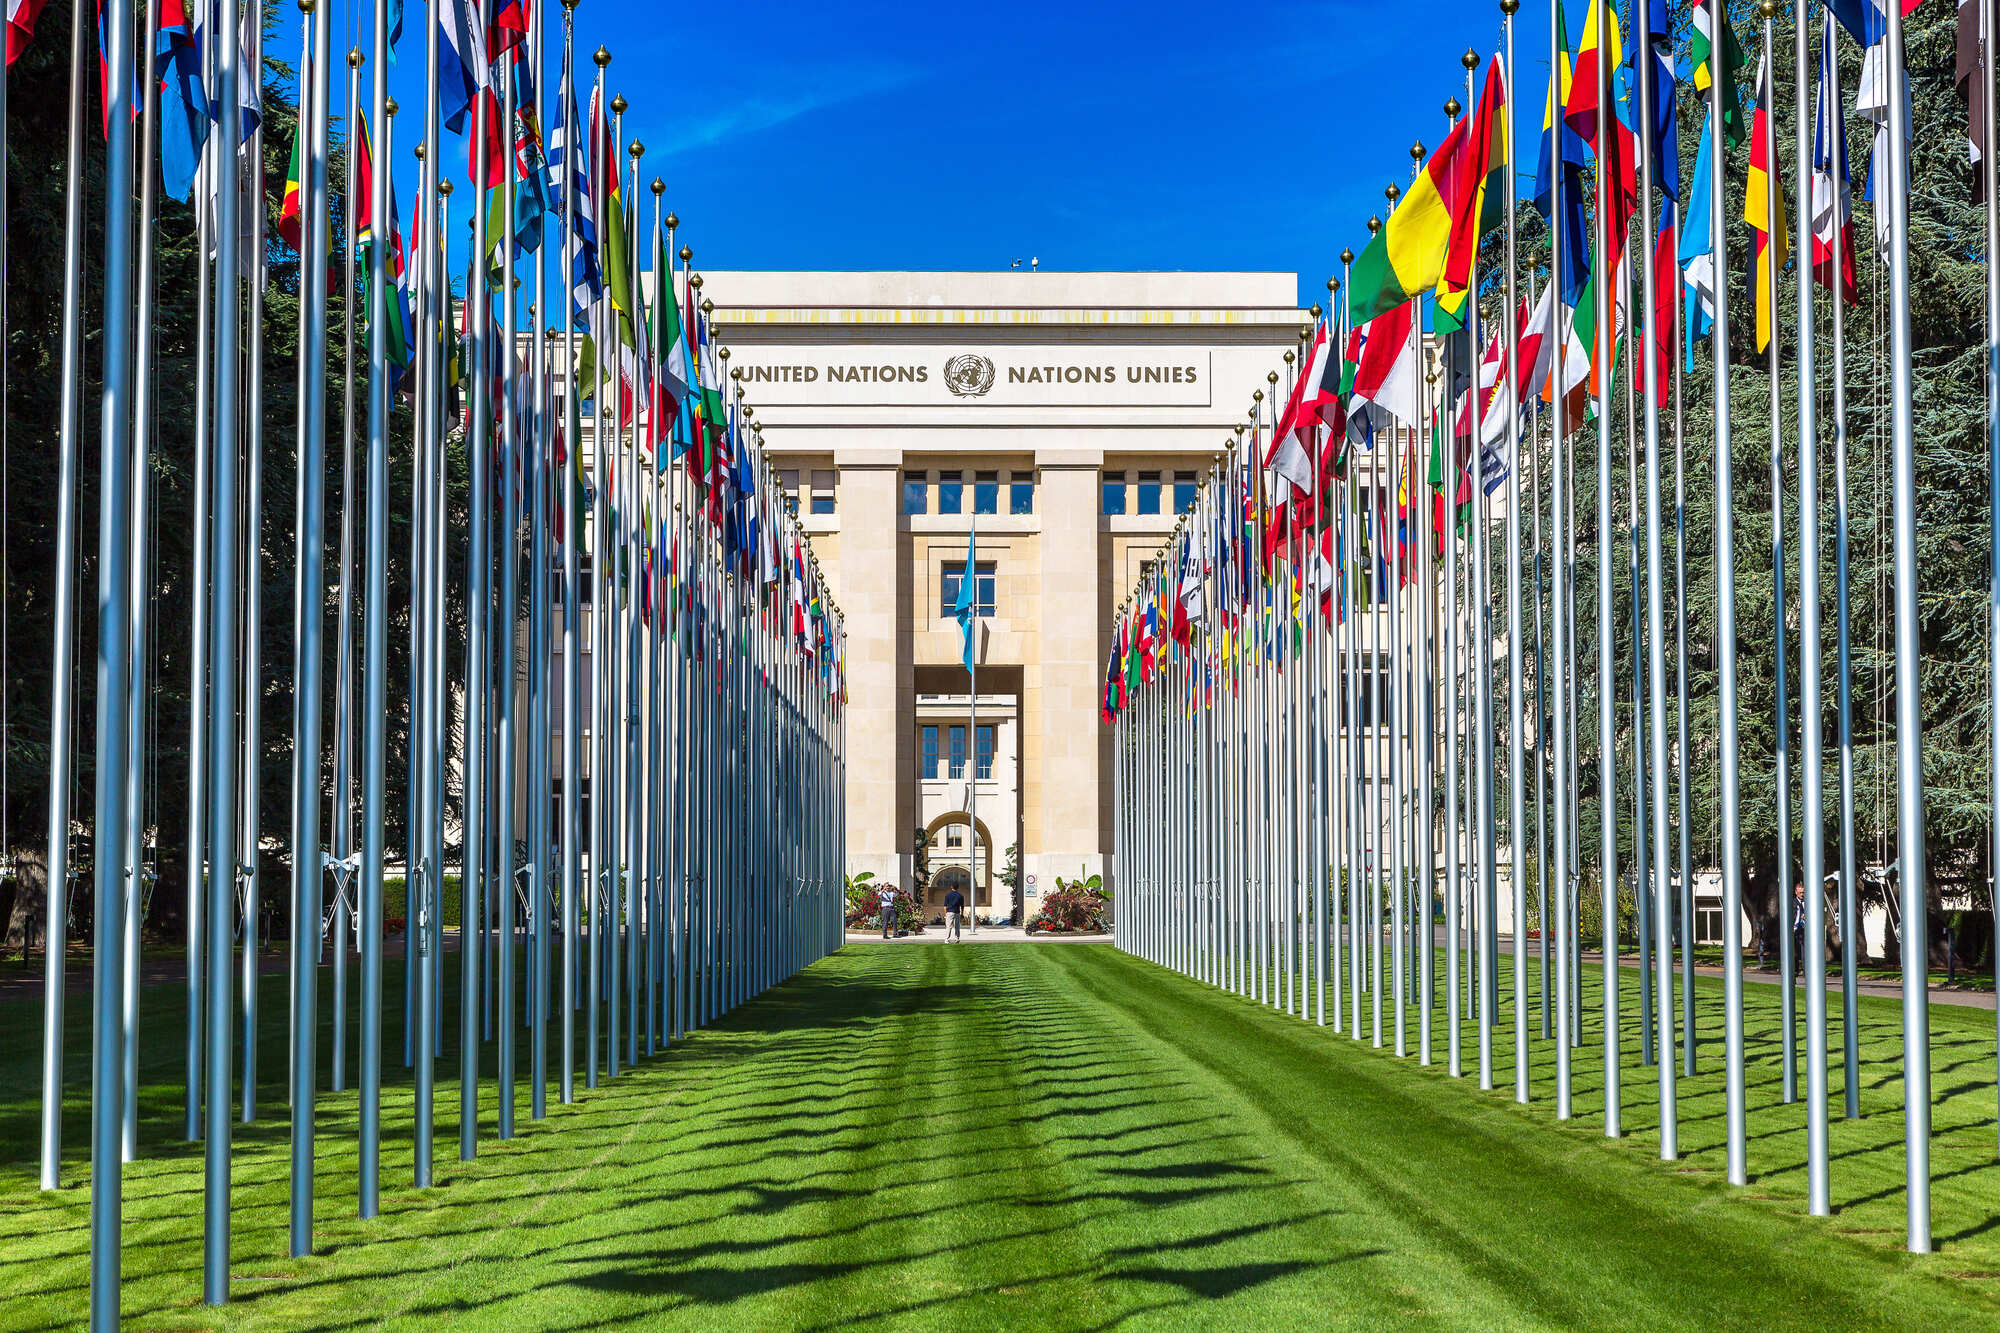 Made In Italy lifts for the UN Headquarters in Geneva. Technology and reliability.